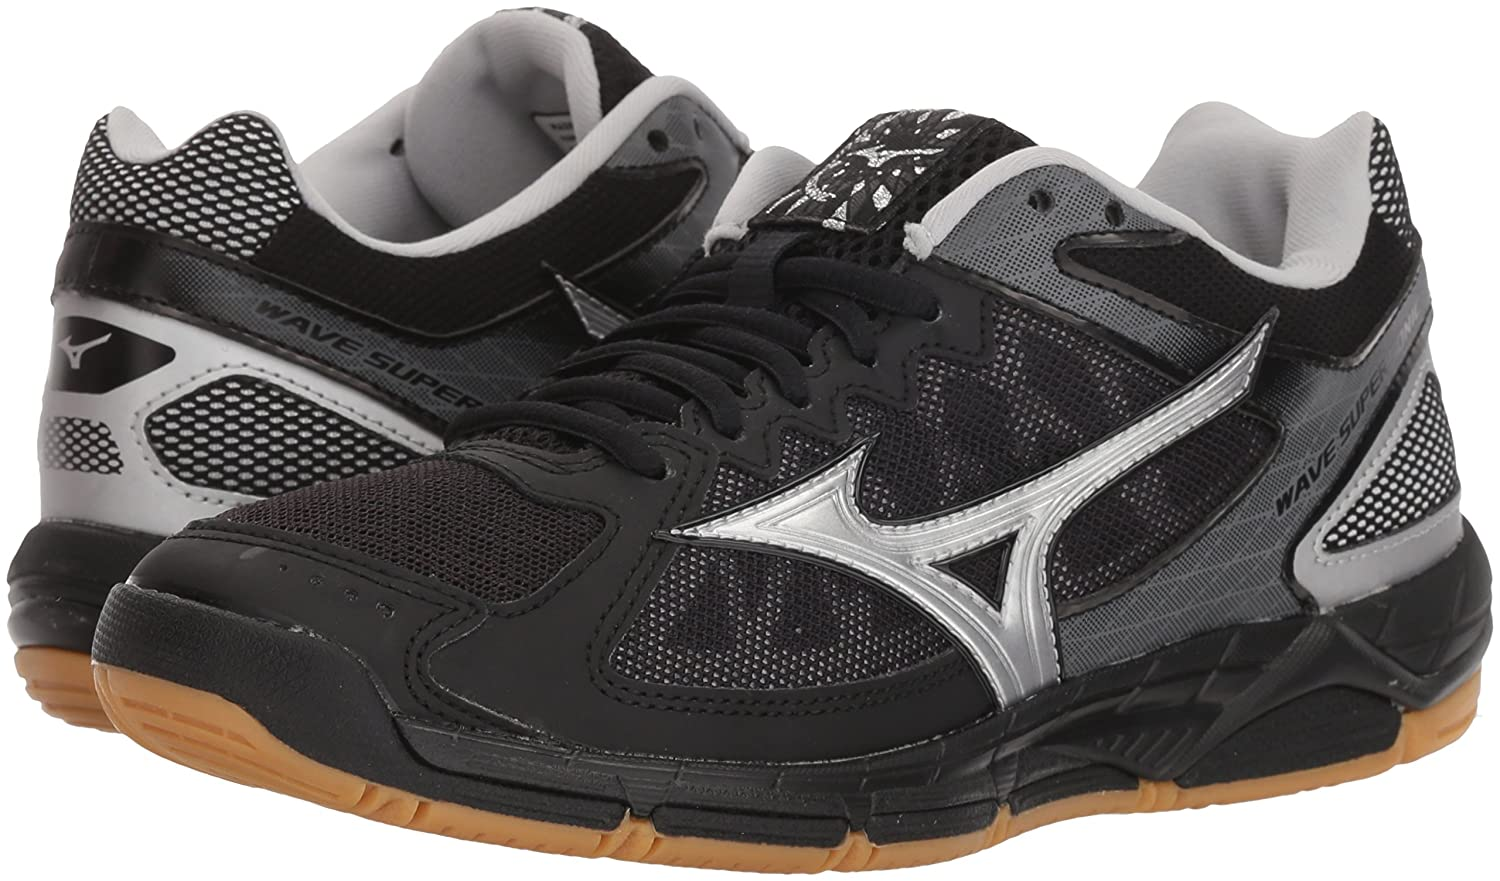 579ba6a3d5b5 Amazon.com | Mizuno Women's Wave Supersonic Volleyball Shoes | Volleyball